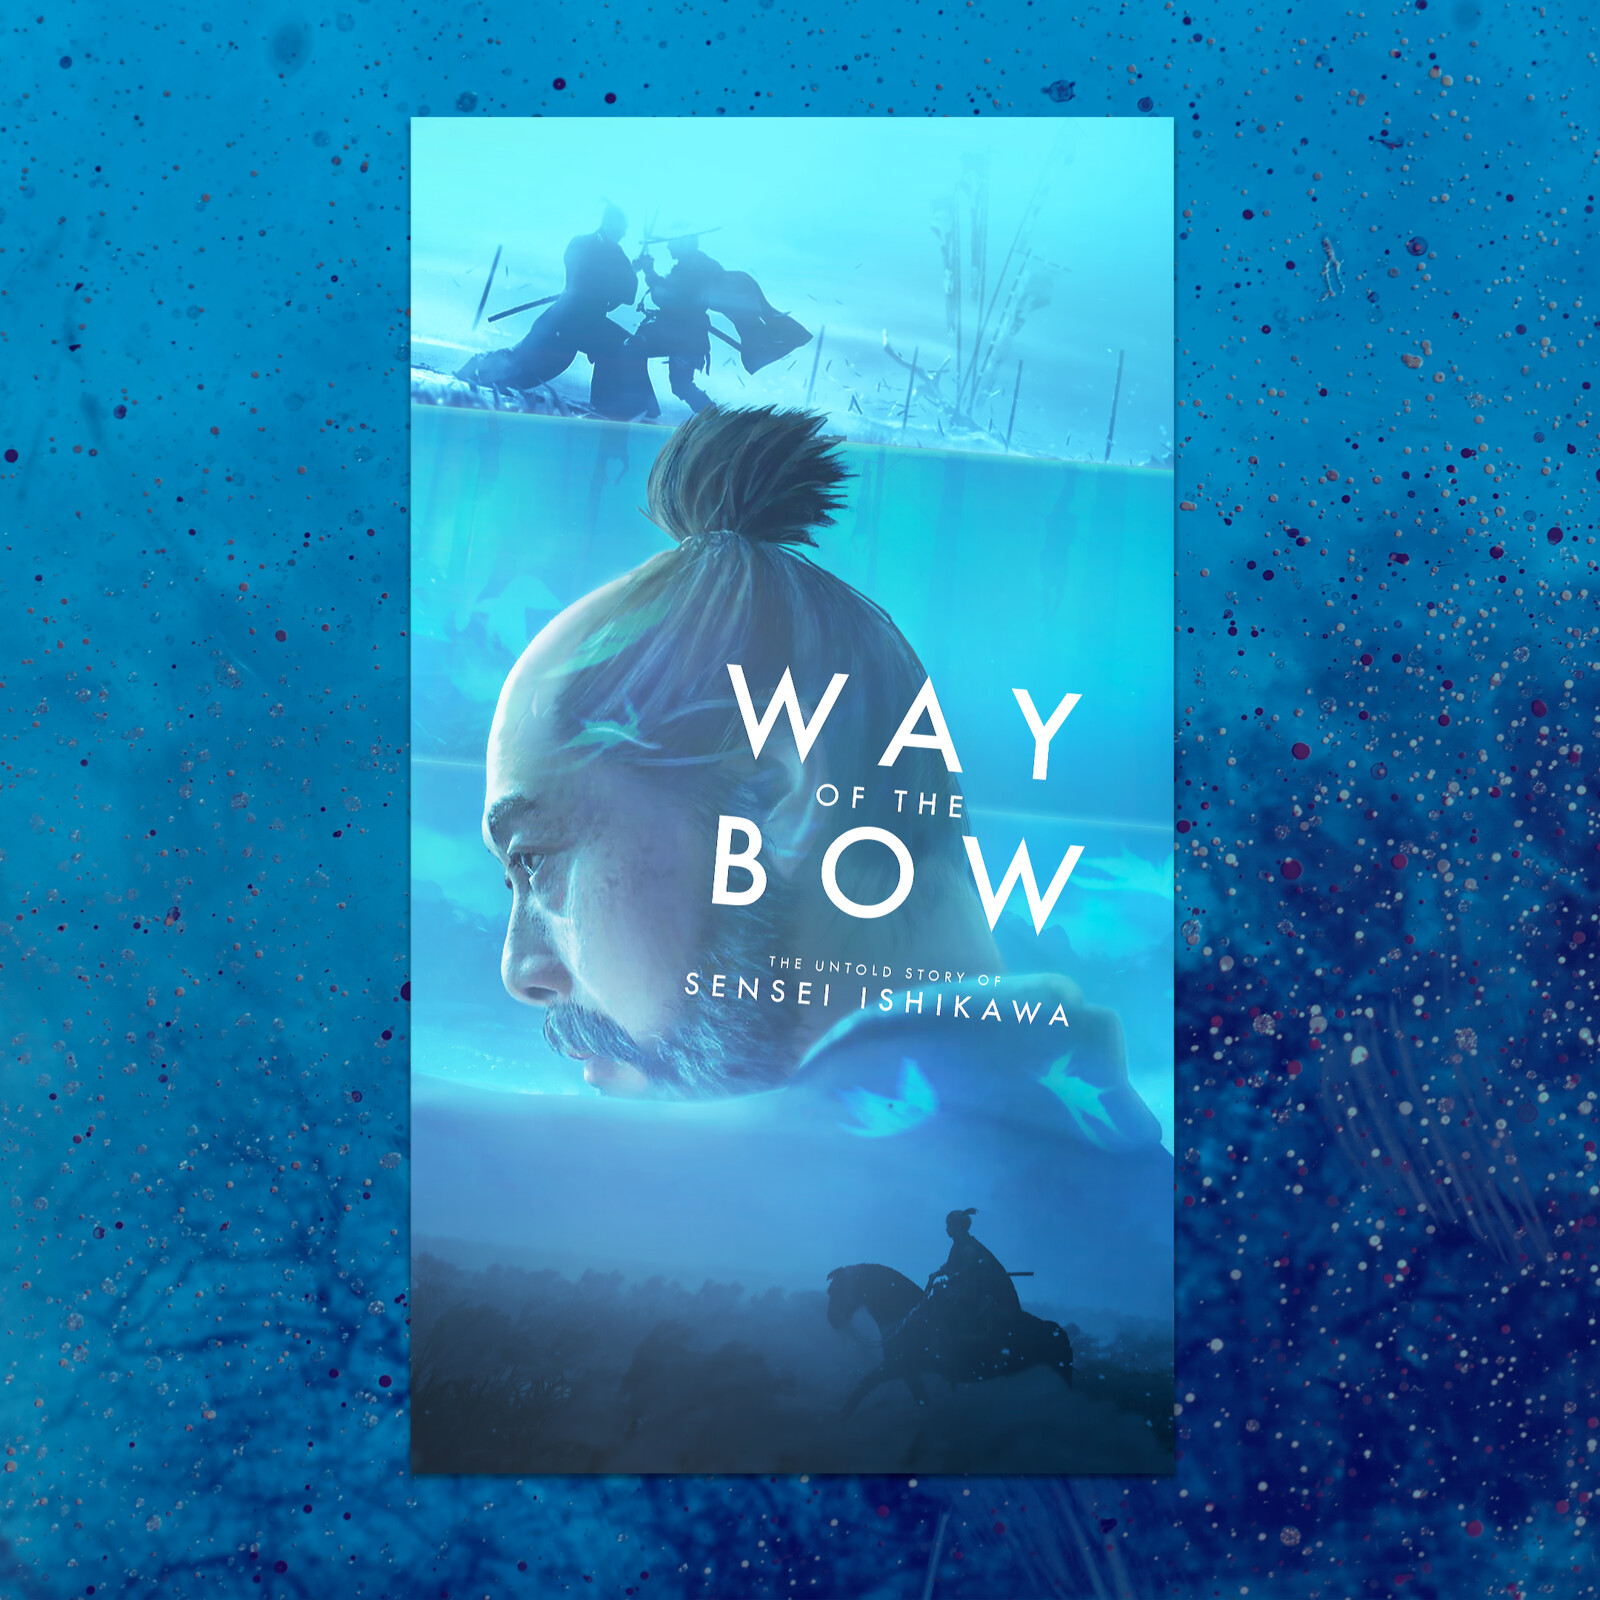 Way of the Bow: Sensei Ichikawa's Untold Story (personal work)